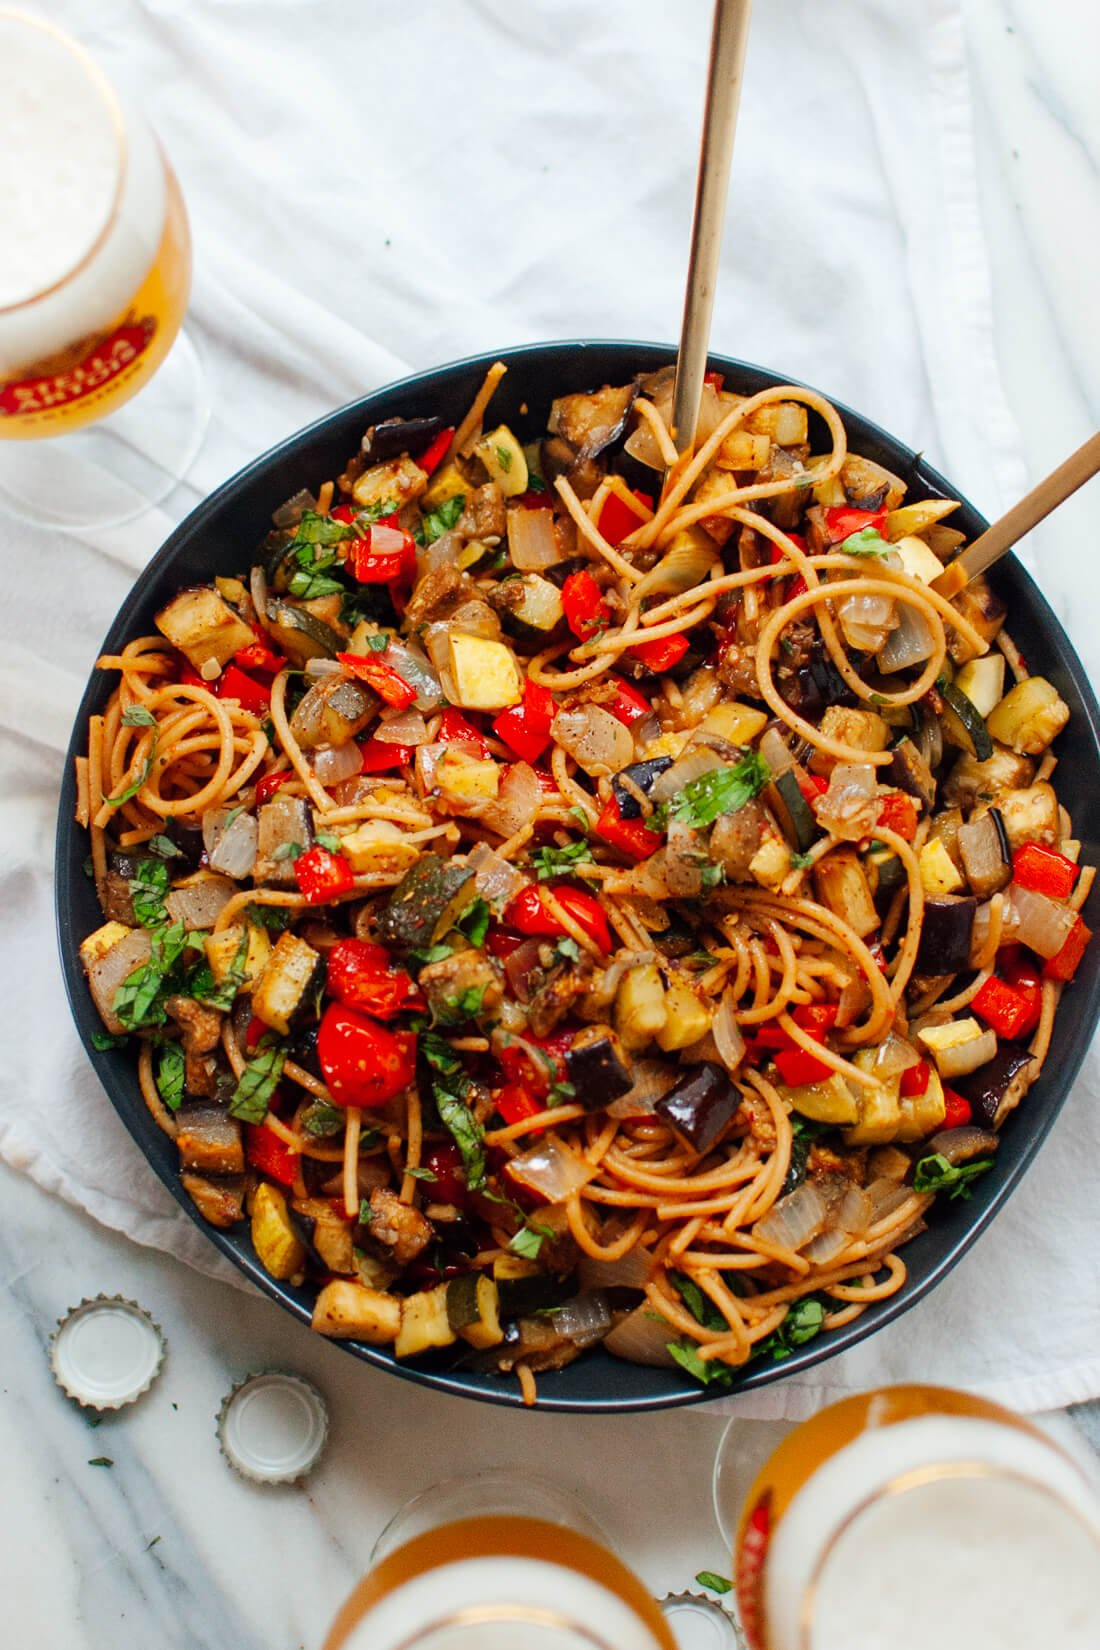 spicy roasted ratatouille with spaghetti